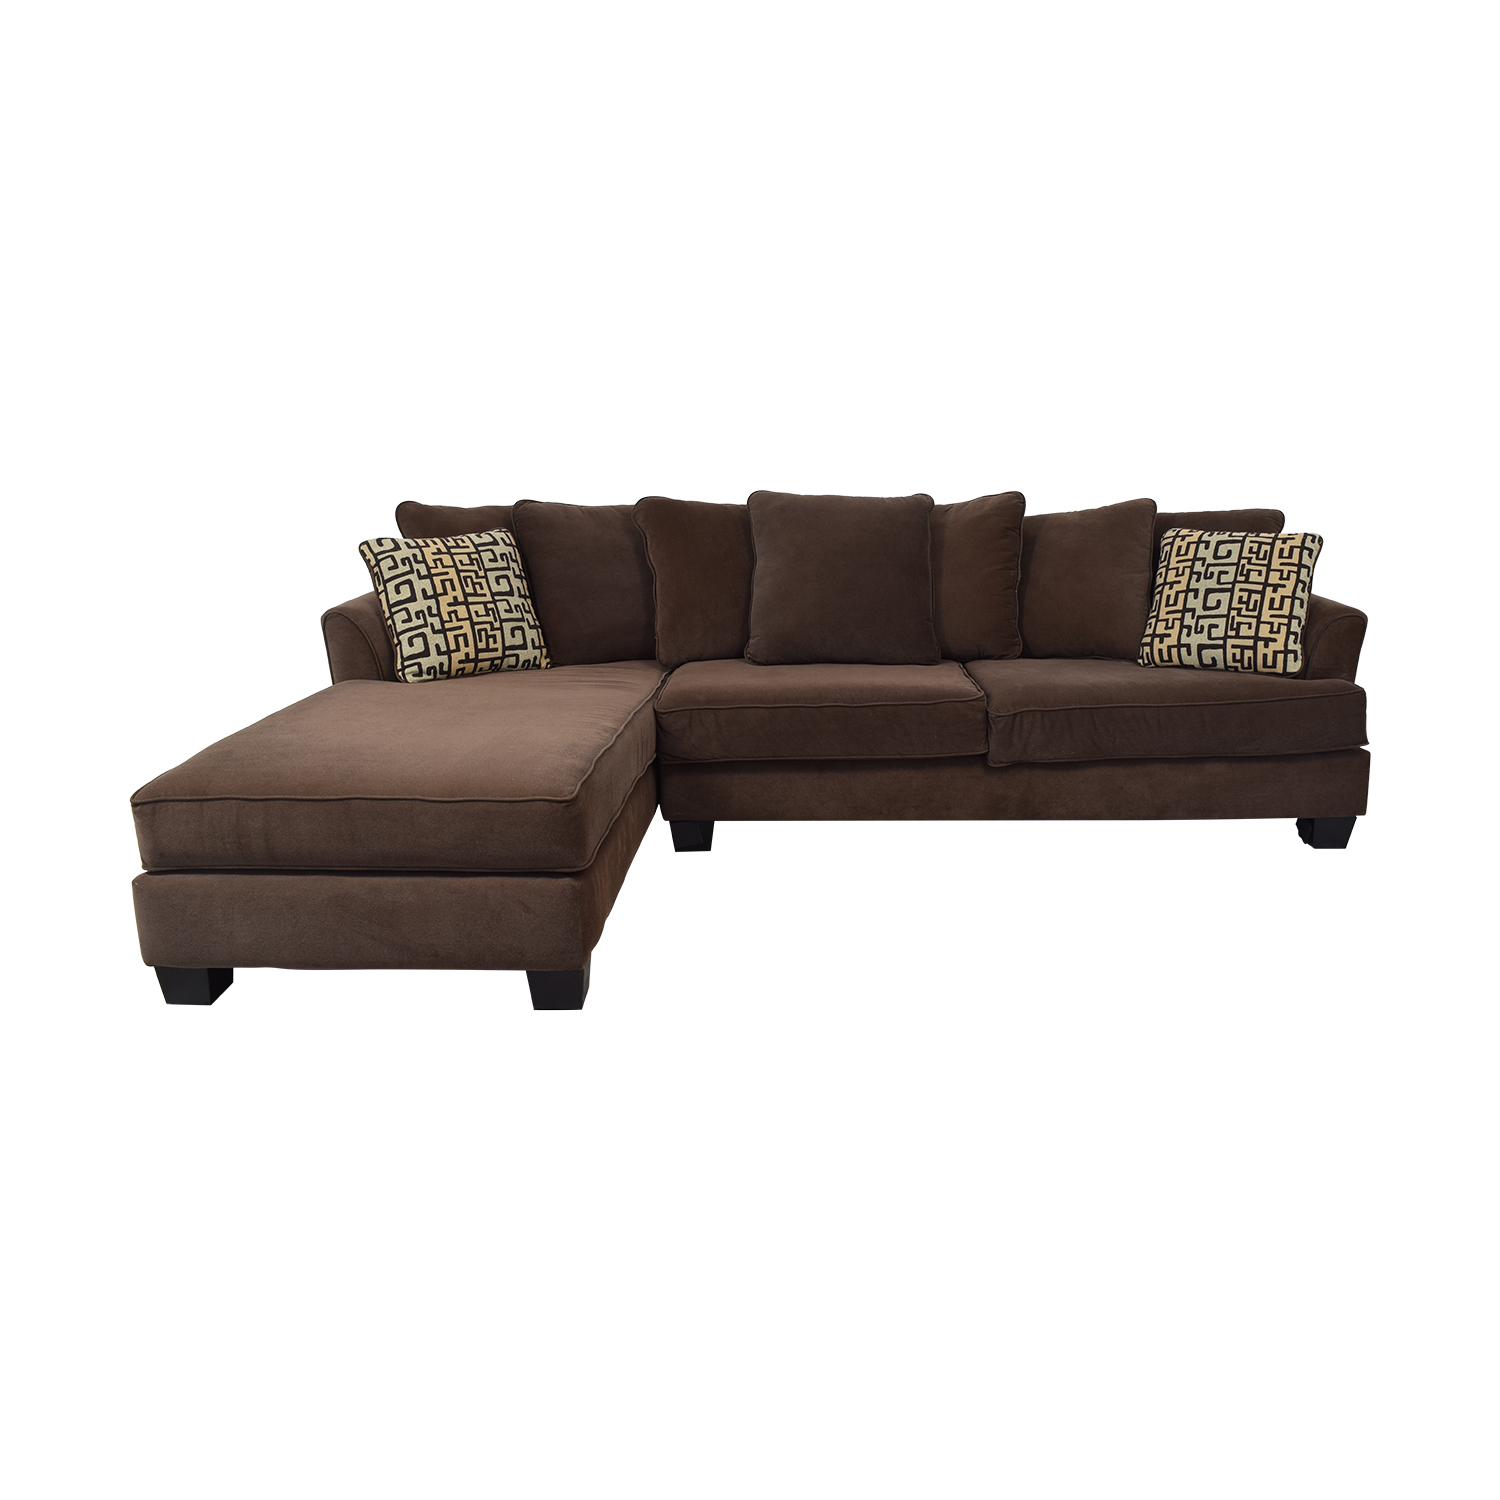 shop Raymour & Flanigan Raymour & Flanigan Two-Piece Sectional Microfiber Sofa online